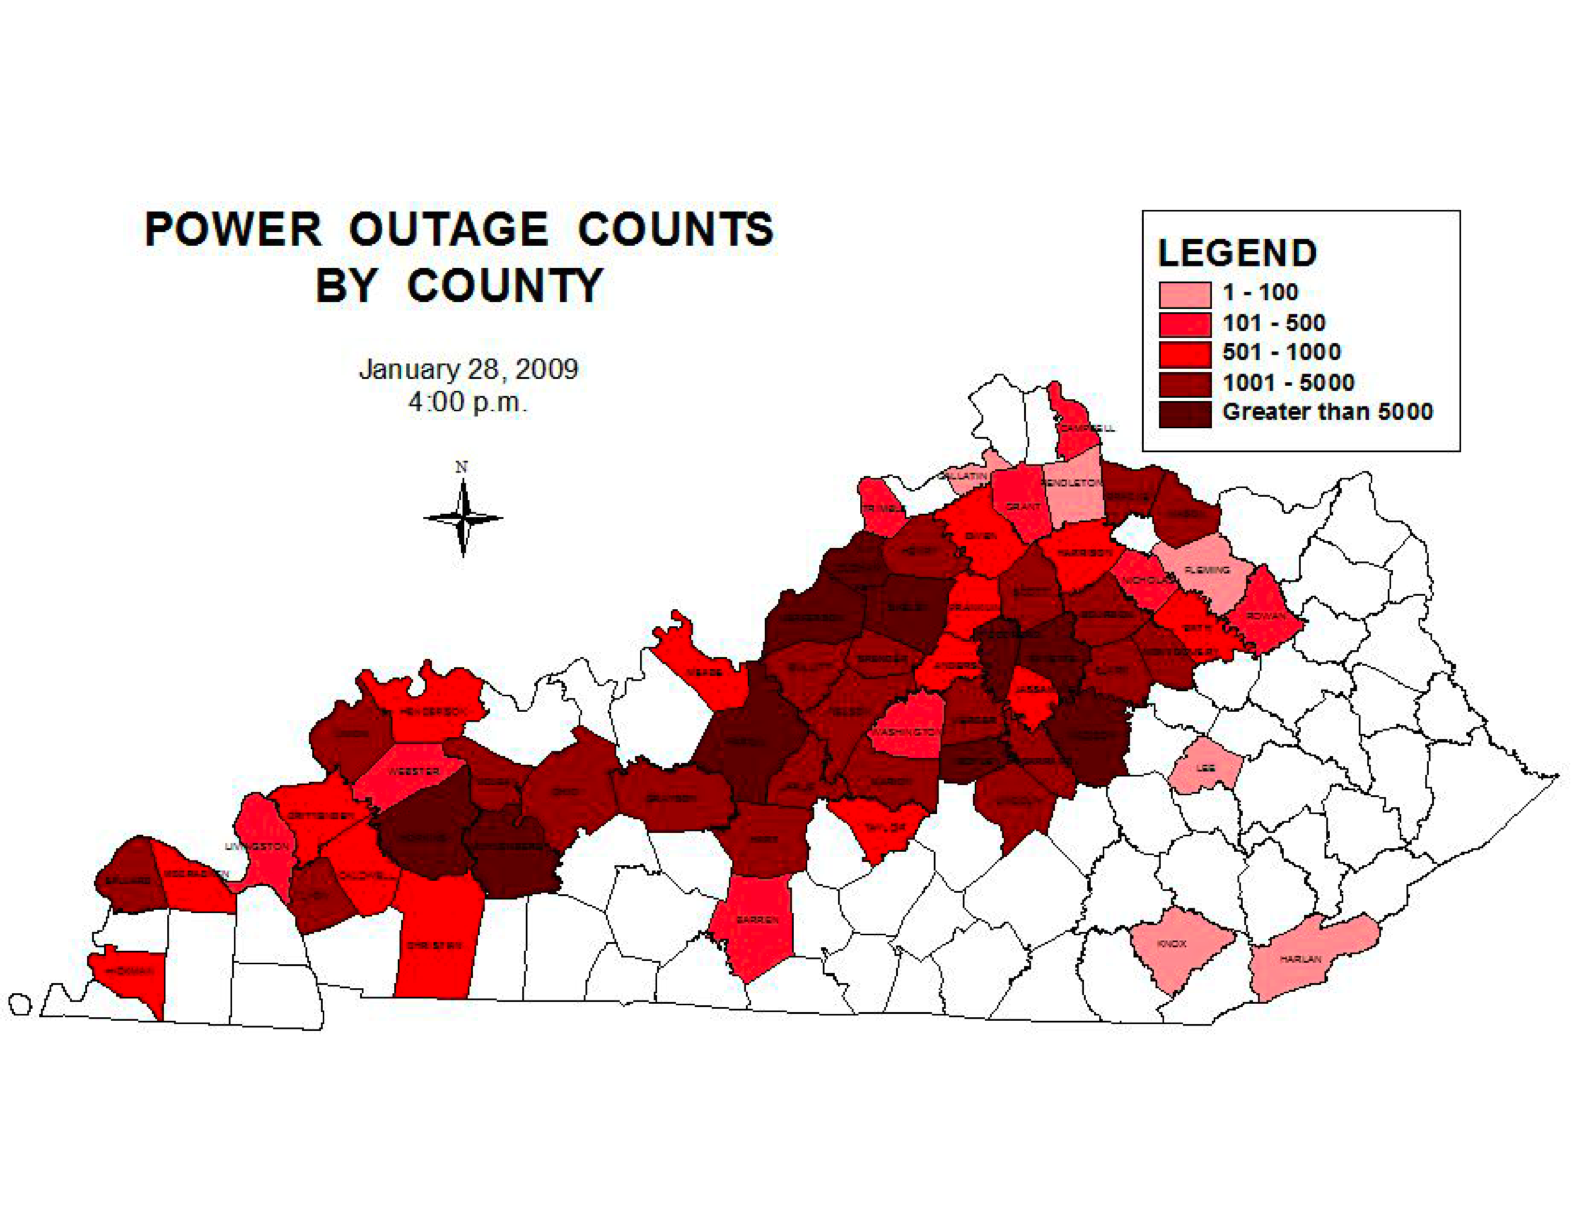 Power outages in nky - Kentucky_map_0128400